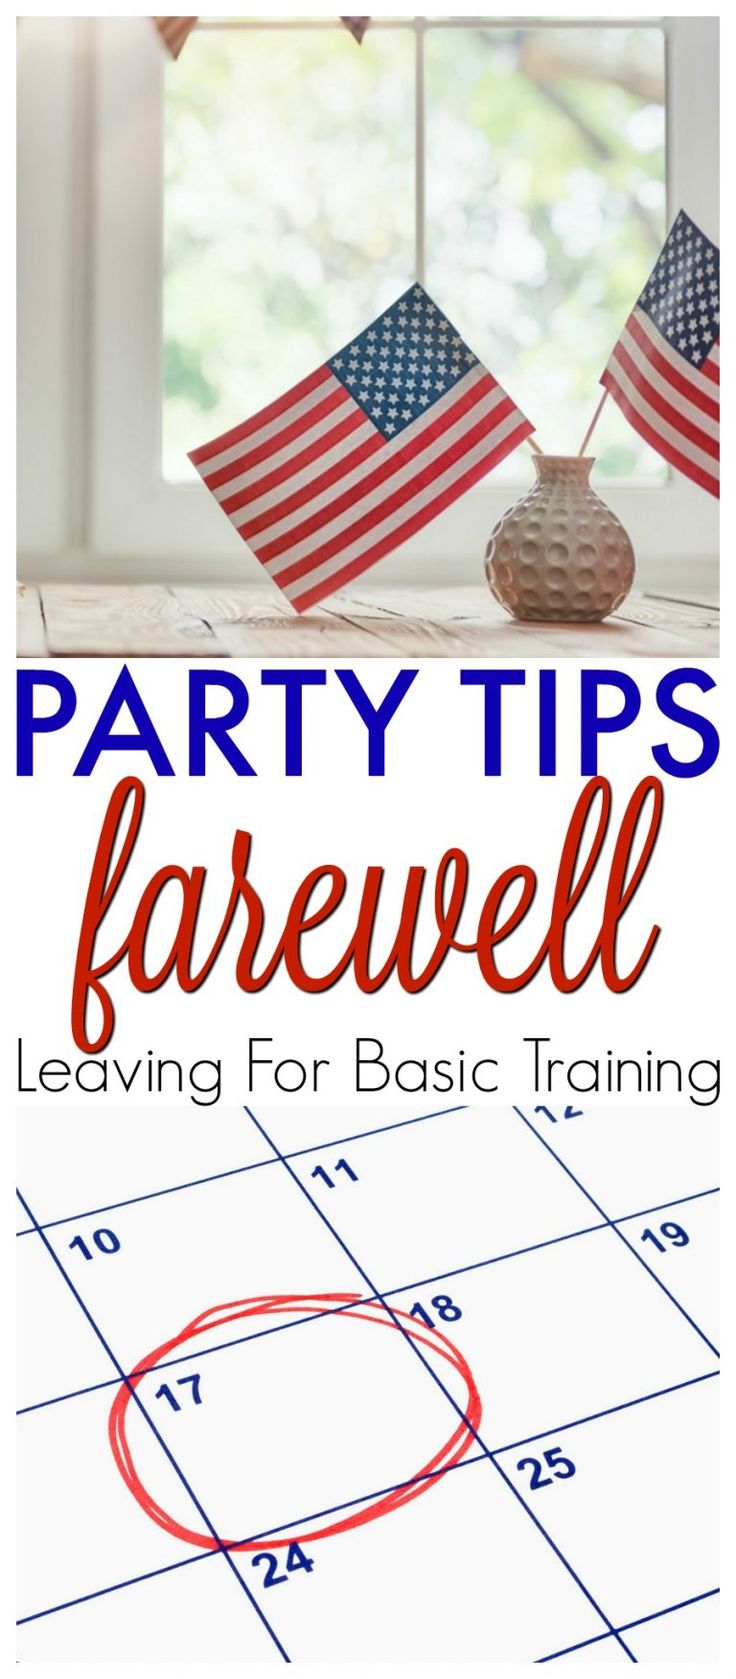 Farewell Party Tips Leaving for Basic Training Farewell Party Tips and Ideas. Basic Training or Boot Camp farewell party. Planning a Party Before Your Son or Daughter Leaves for Basic Training. https://www.southernfamilyfun.com/farewell-party-tips-basic-training/